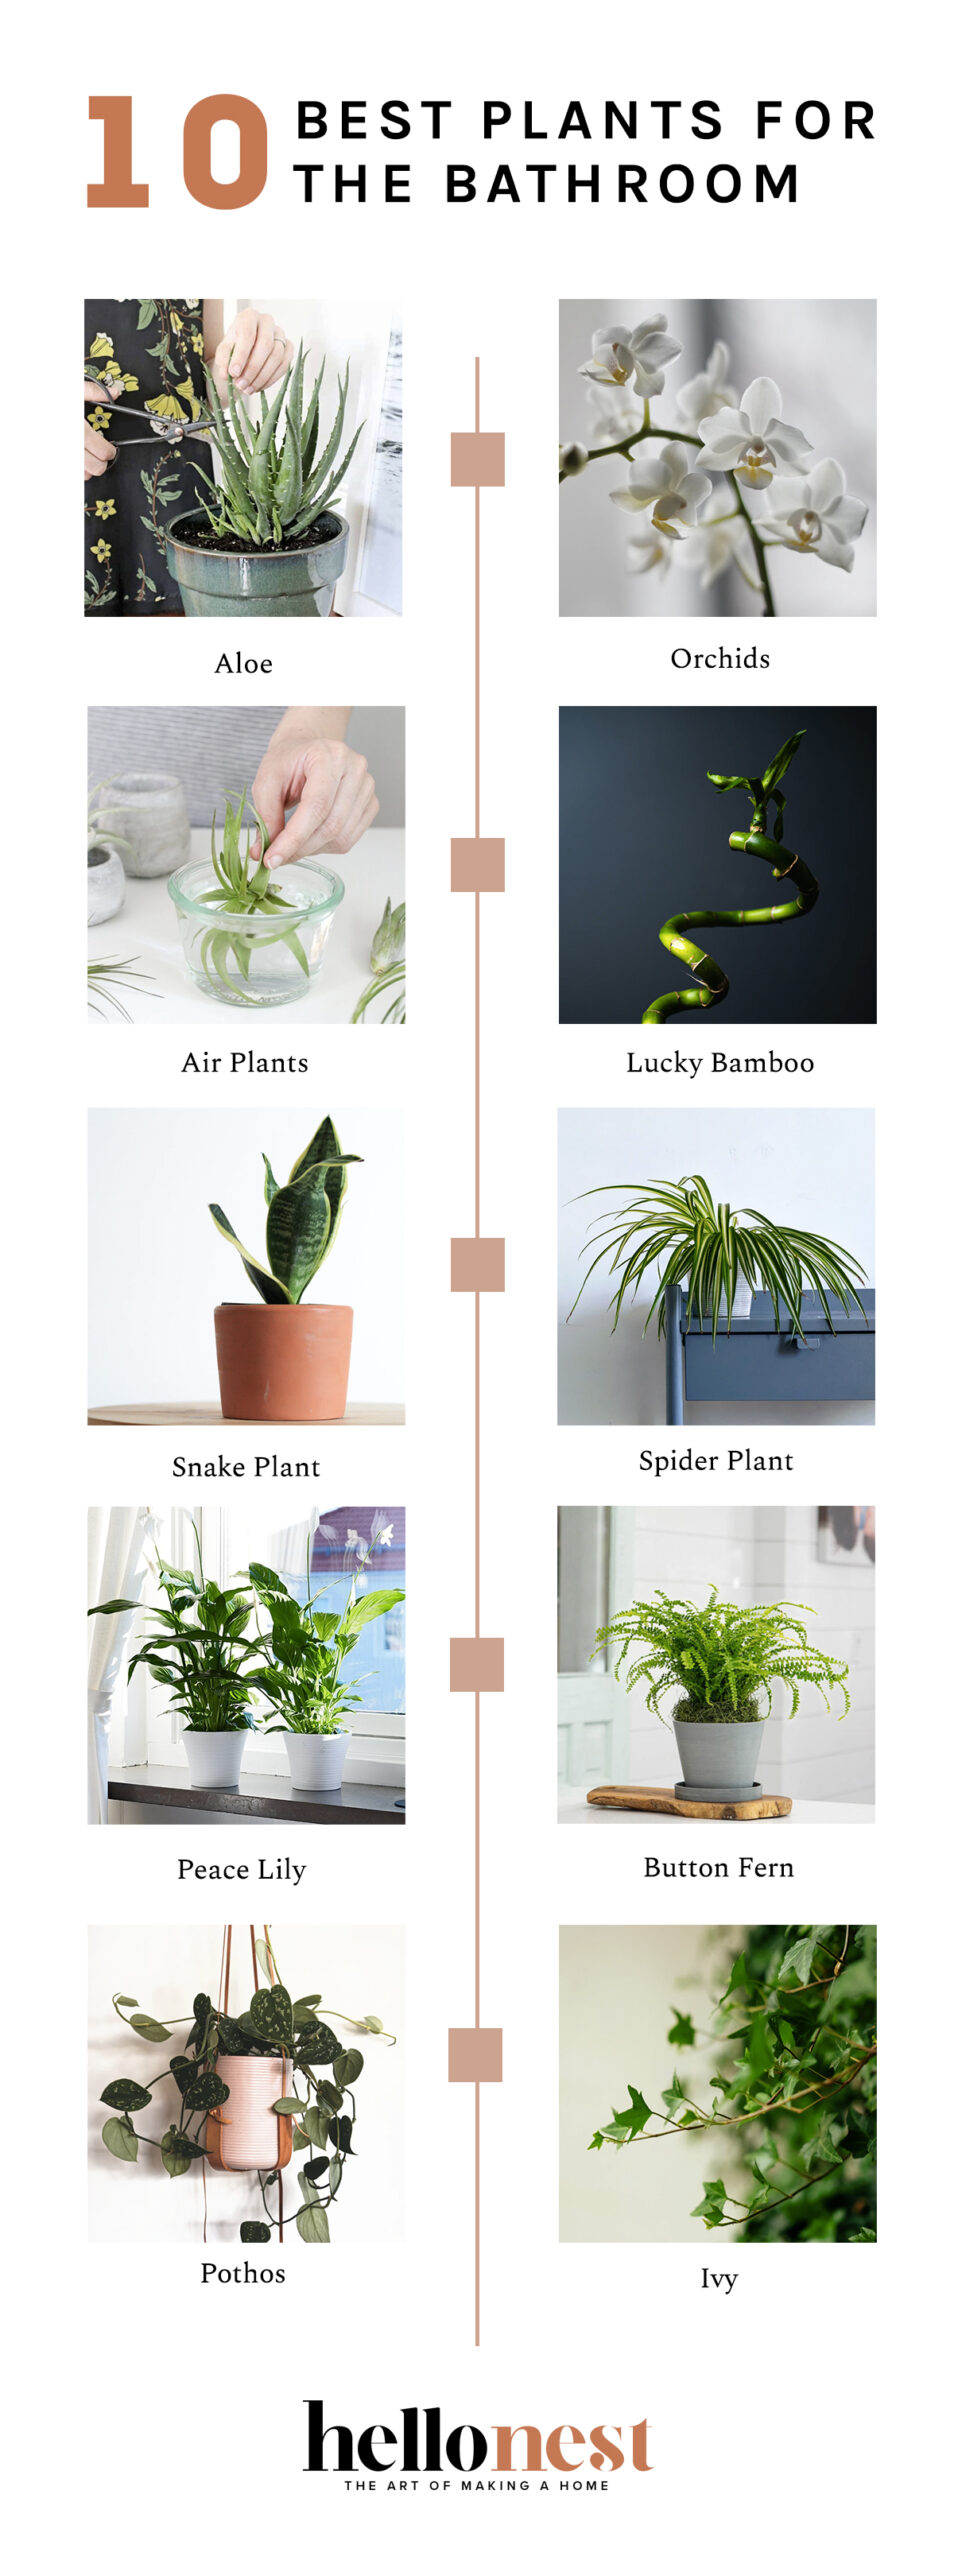 10 Best Plants for the Bathroom - HelloNest.co